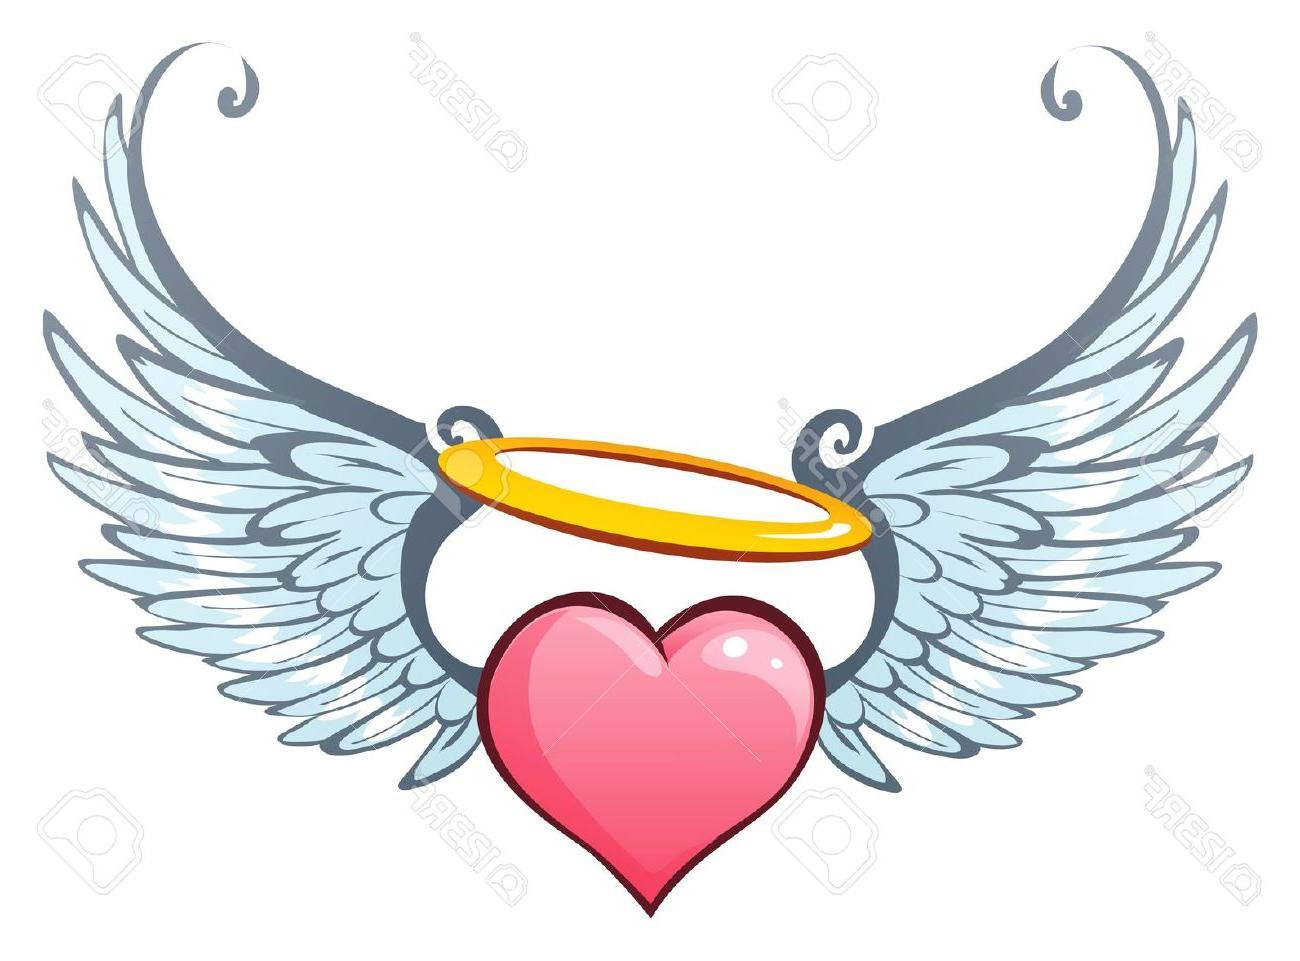 1300x961 Best Heart Angel Wings Vector Art Images Free Vector Art, Images